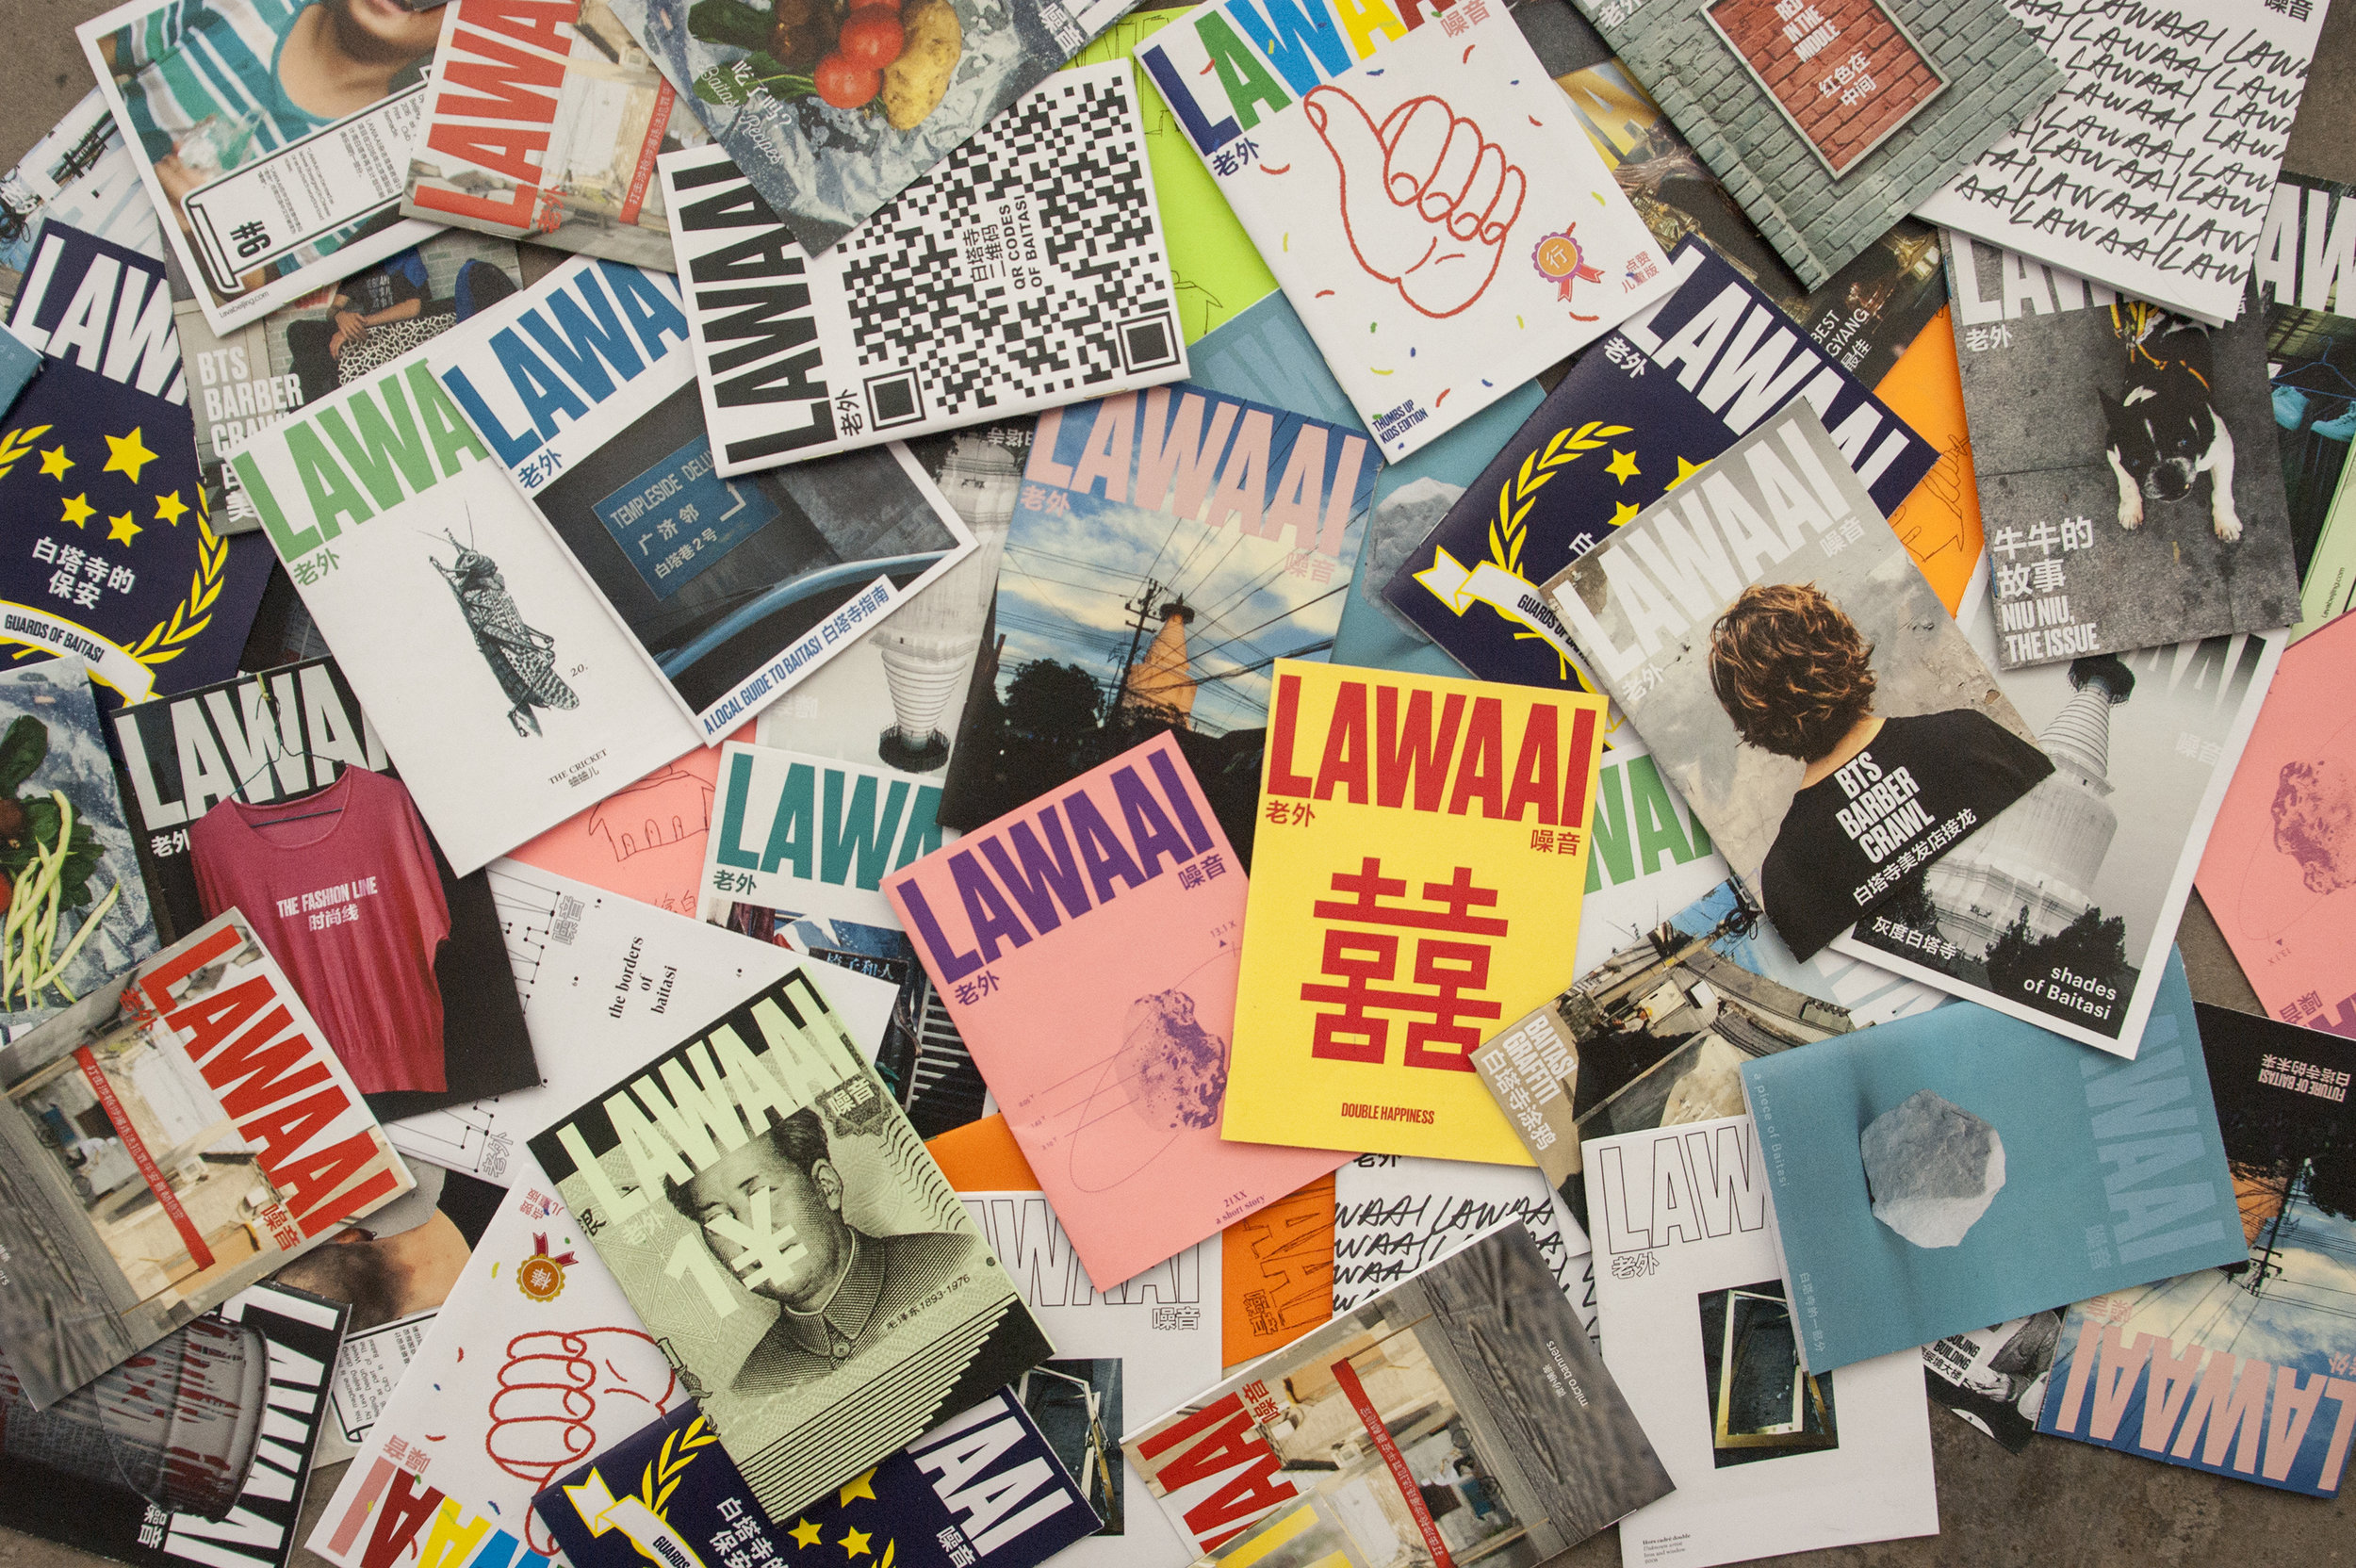 LAWAAI magazine, courtesy of Lava Beijing